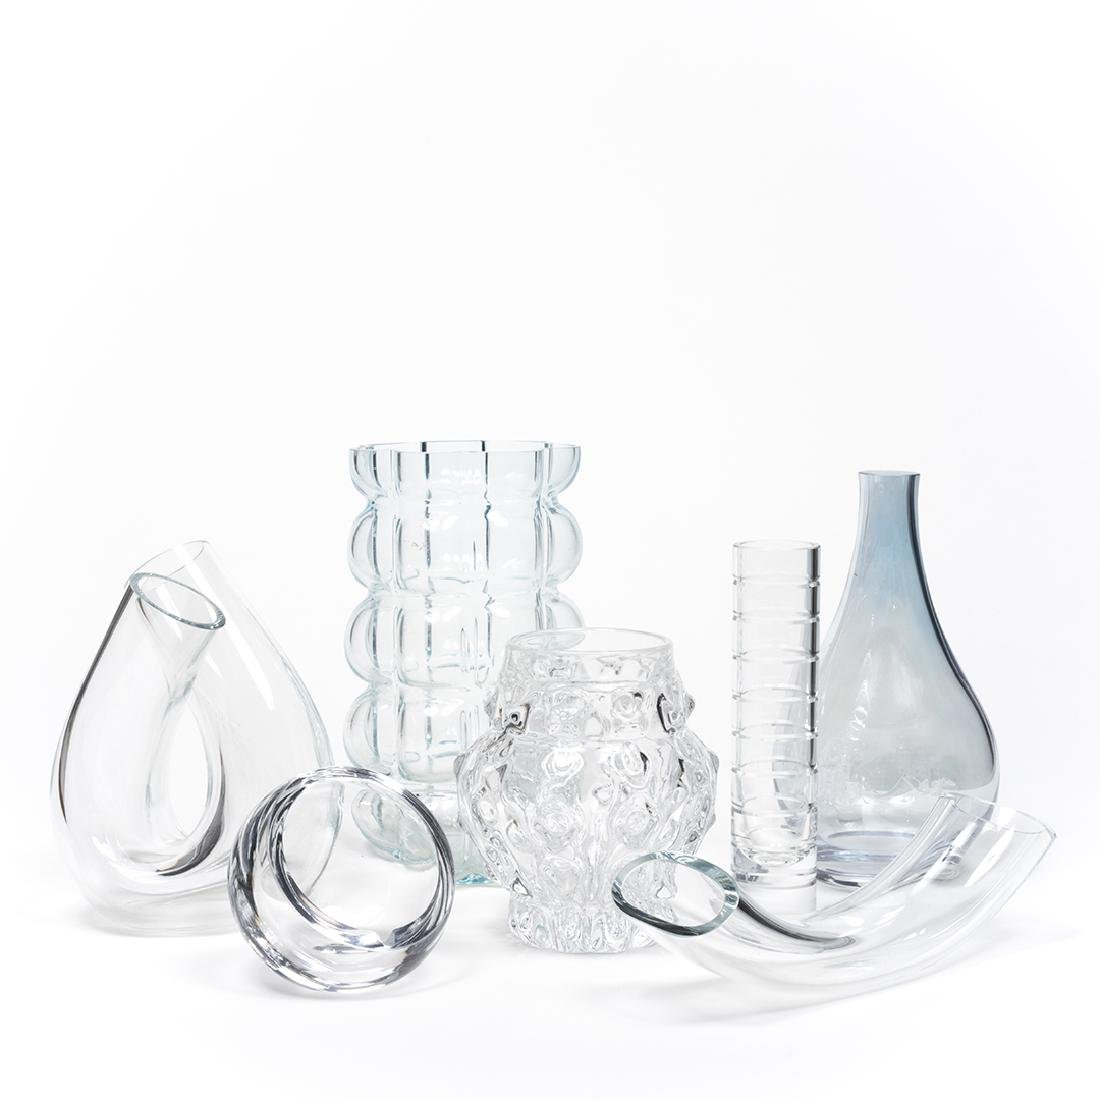 Modernist Clear Glass (8)